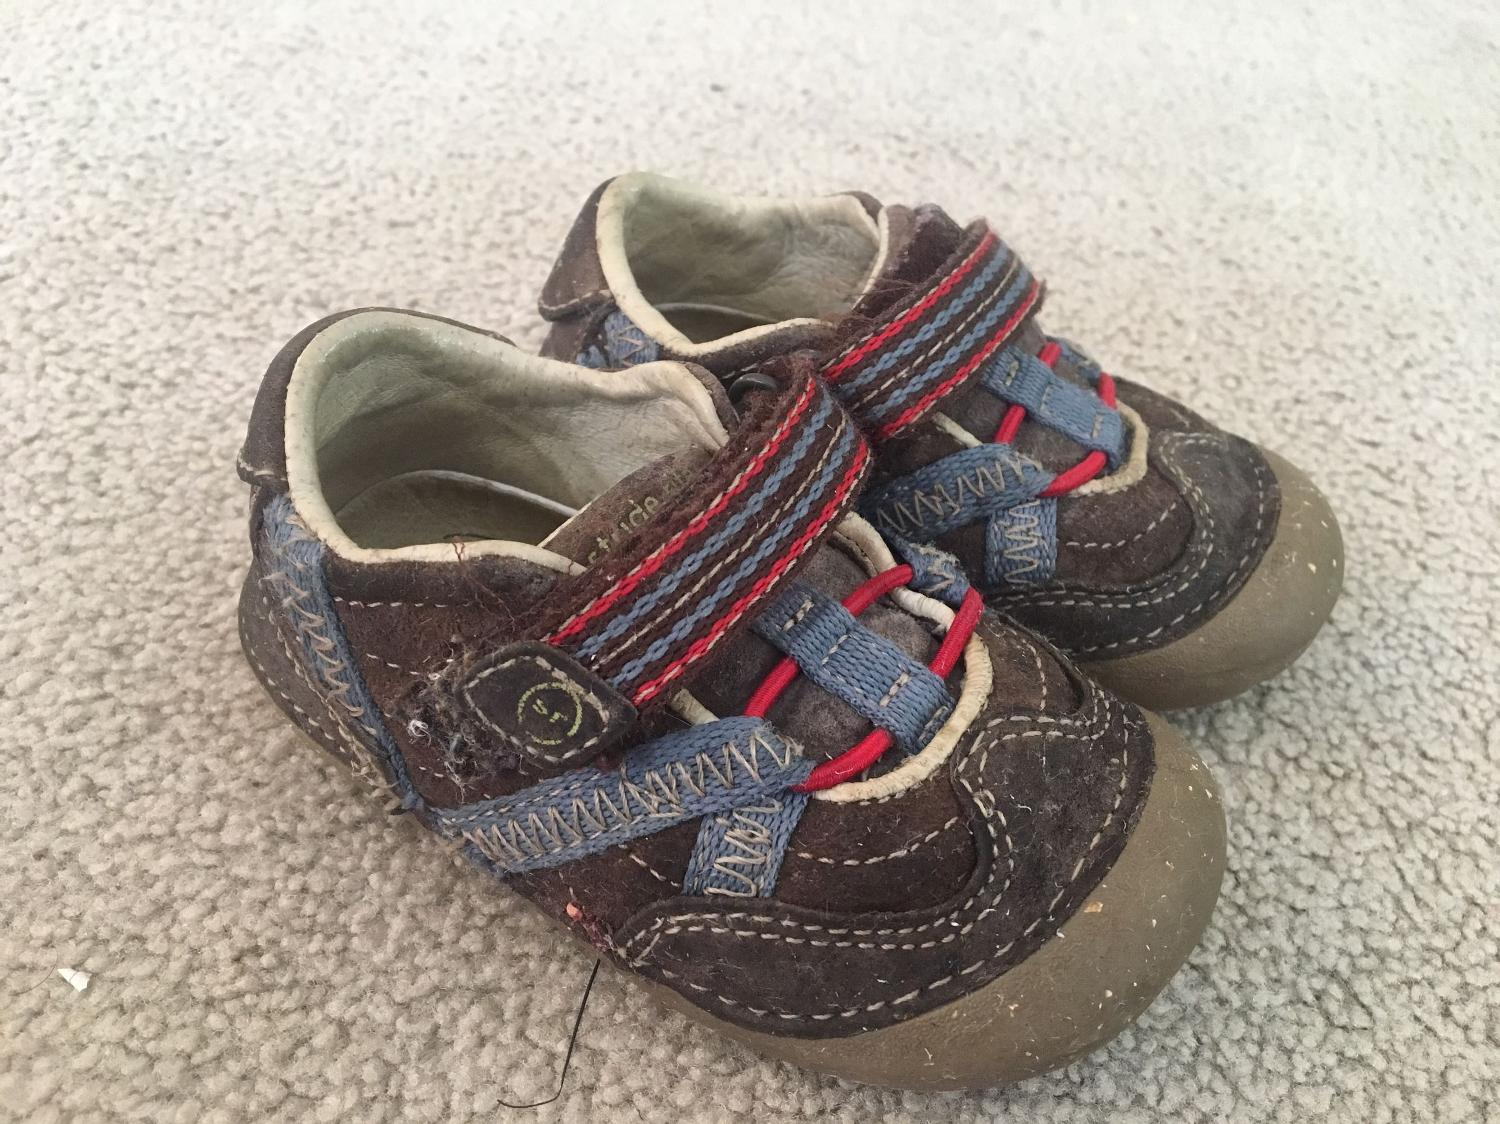 ... Size 4.5w Stride Rite Shoes for sale at up to 90% off - Charlotte, NC